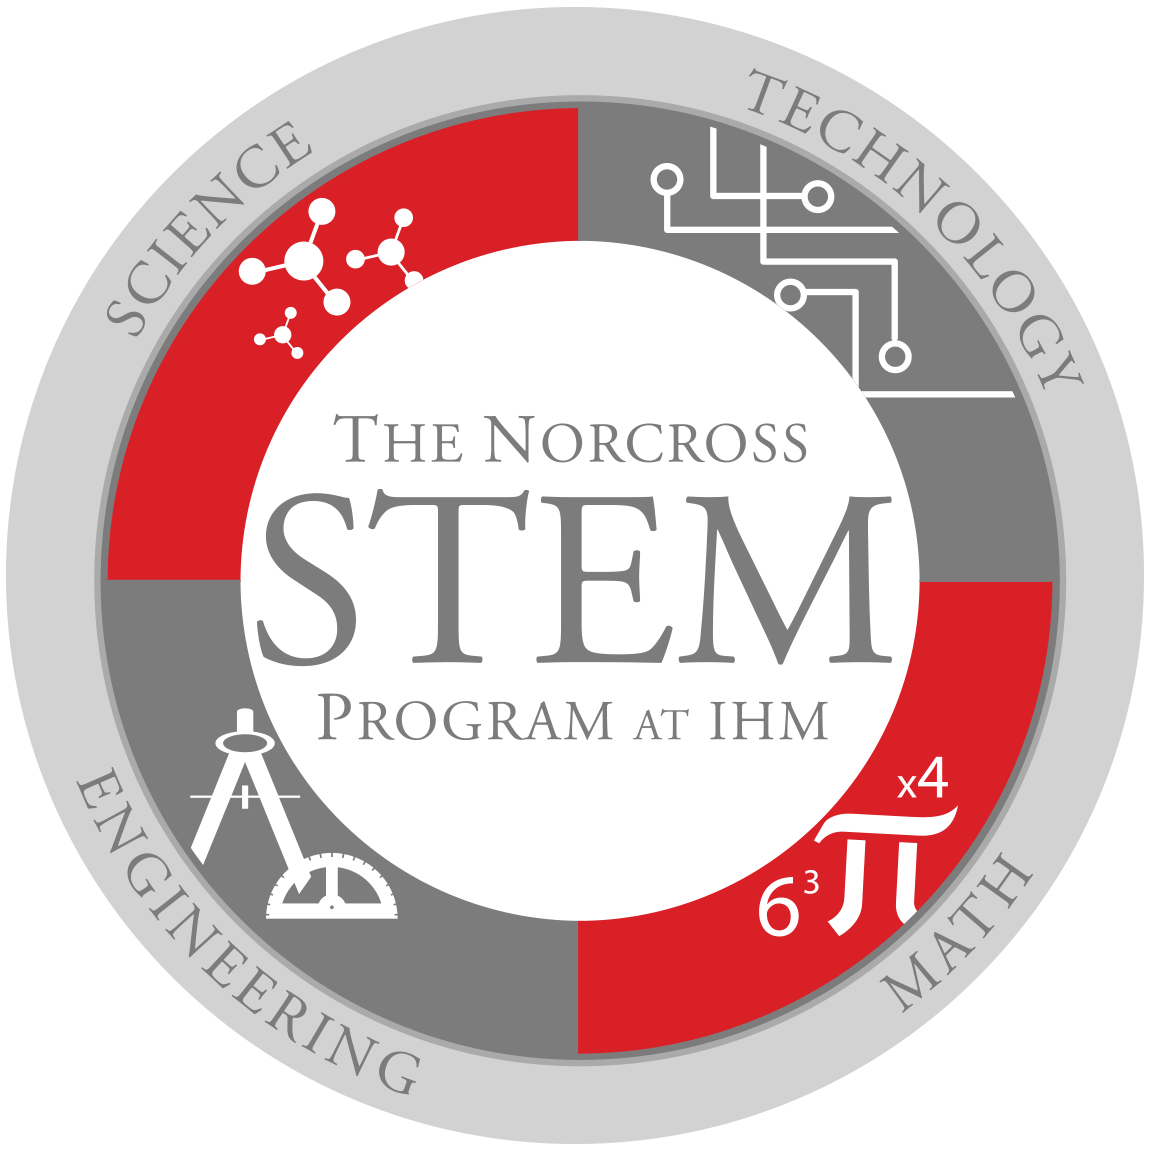 Norcross STEM Program At IHM